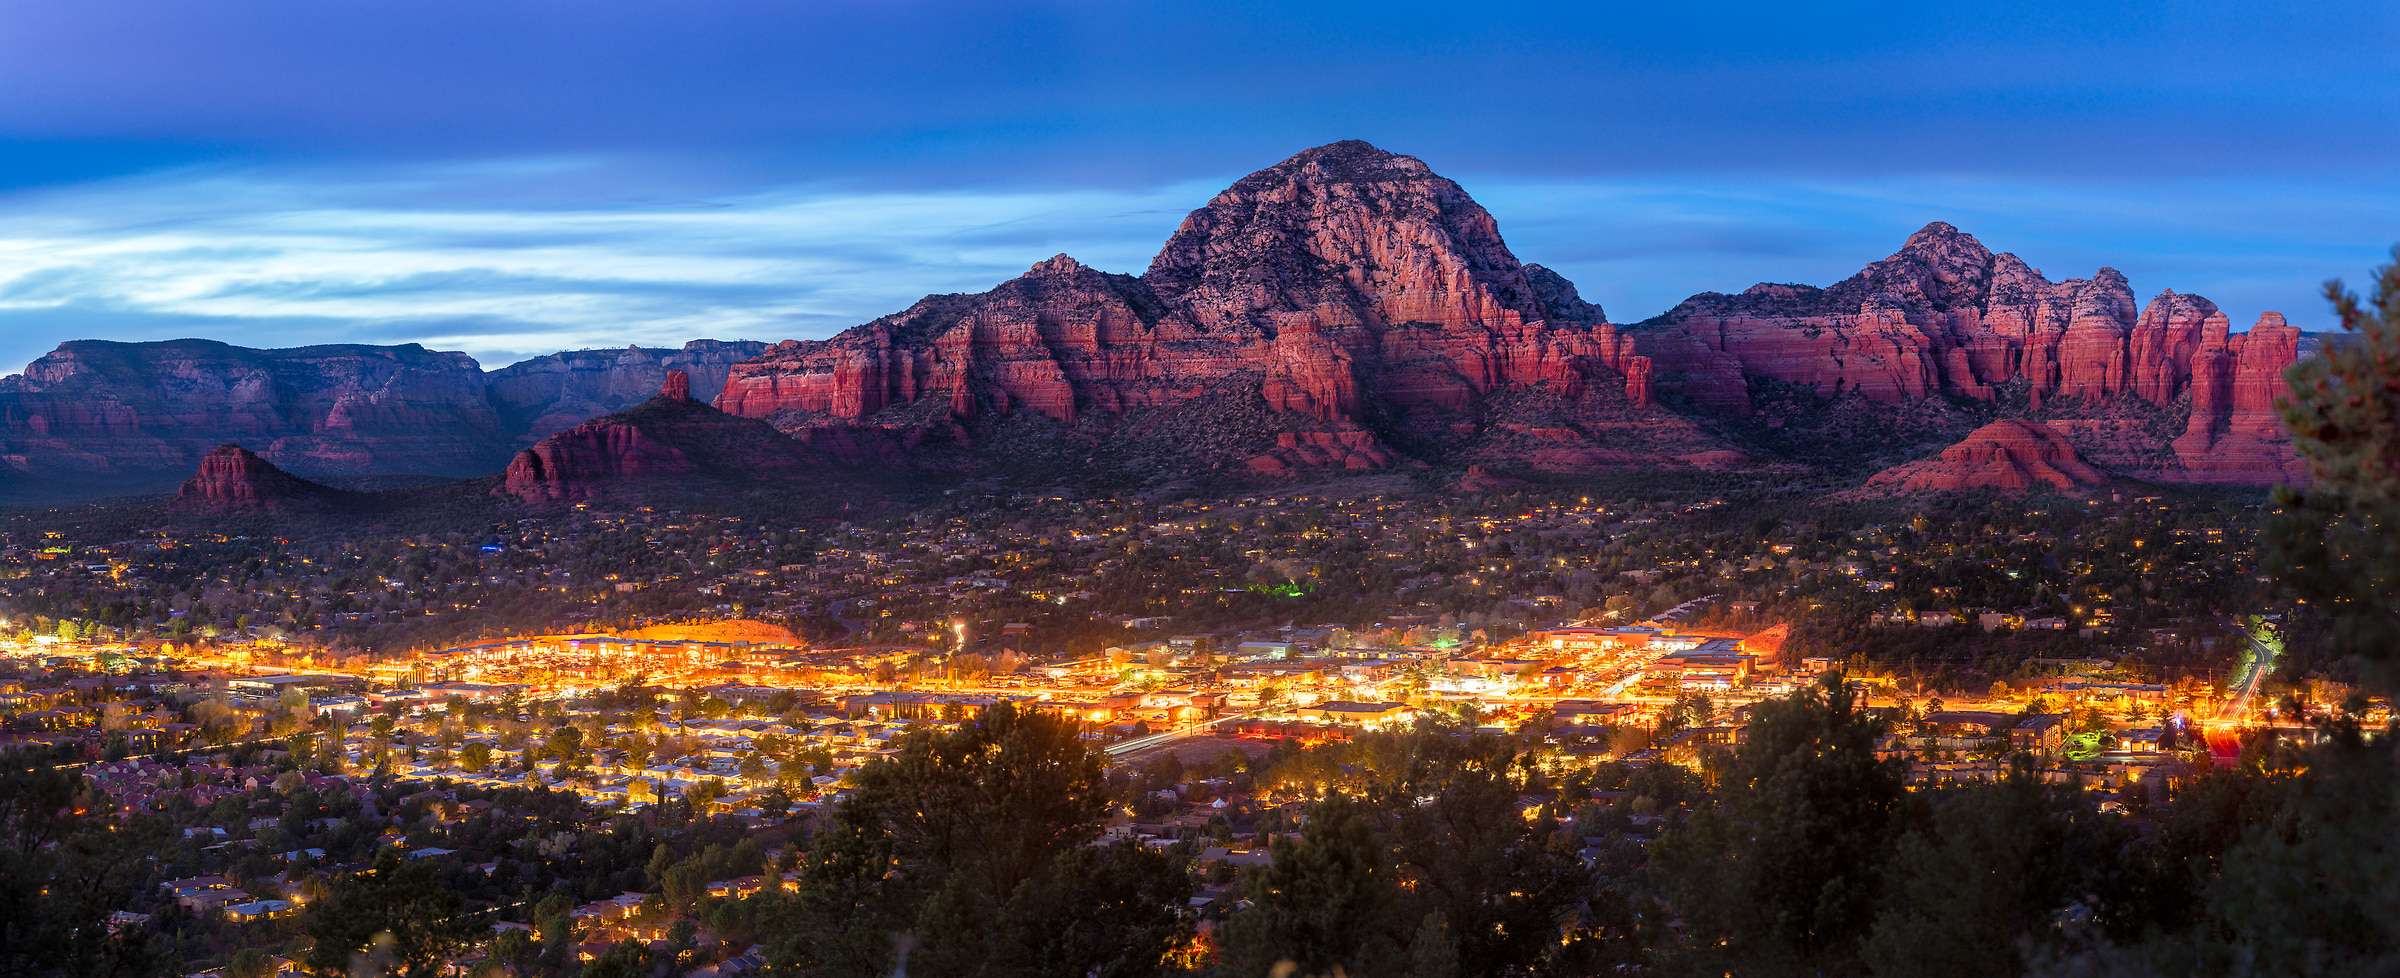 472 megapixels! A very high resolution, large-format VAST photo print of Sedona, Arizona; photograph created by Jim Tarpo